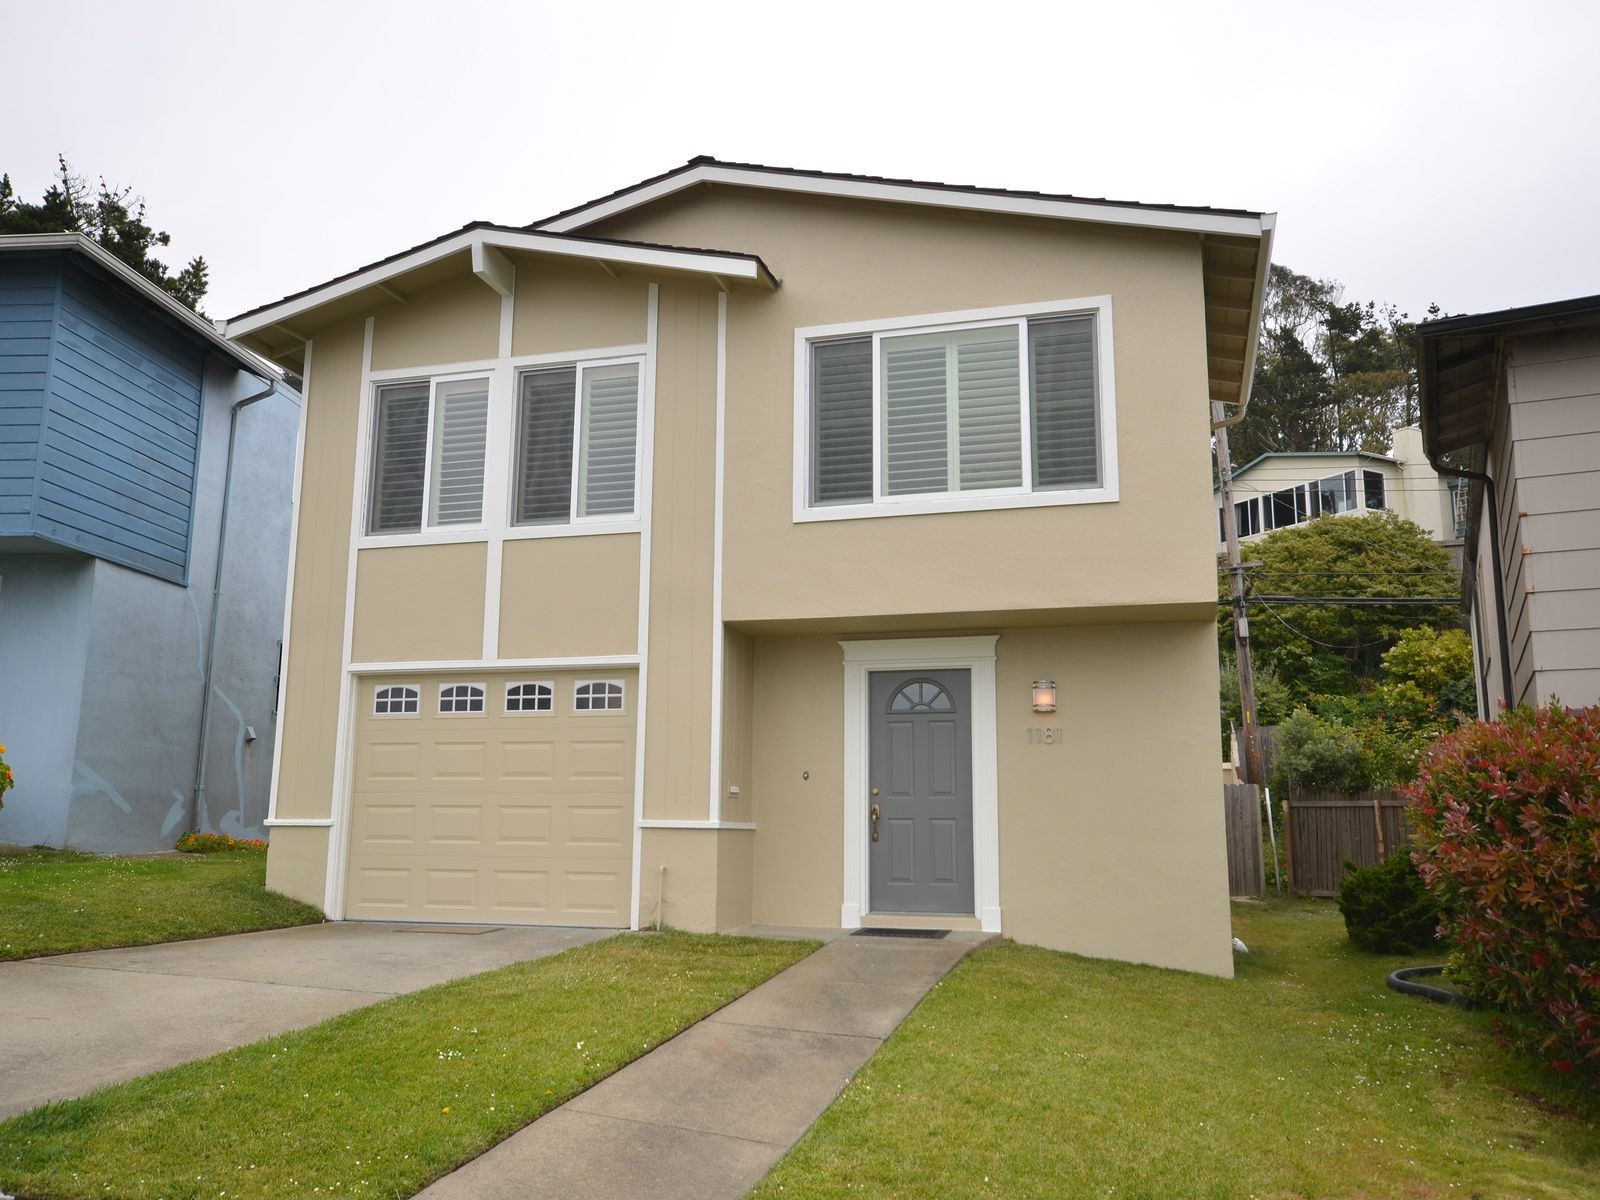 1181 Skyline Drive, Daly City, Daly City CA Single Family Home - San Francisco Real Estate